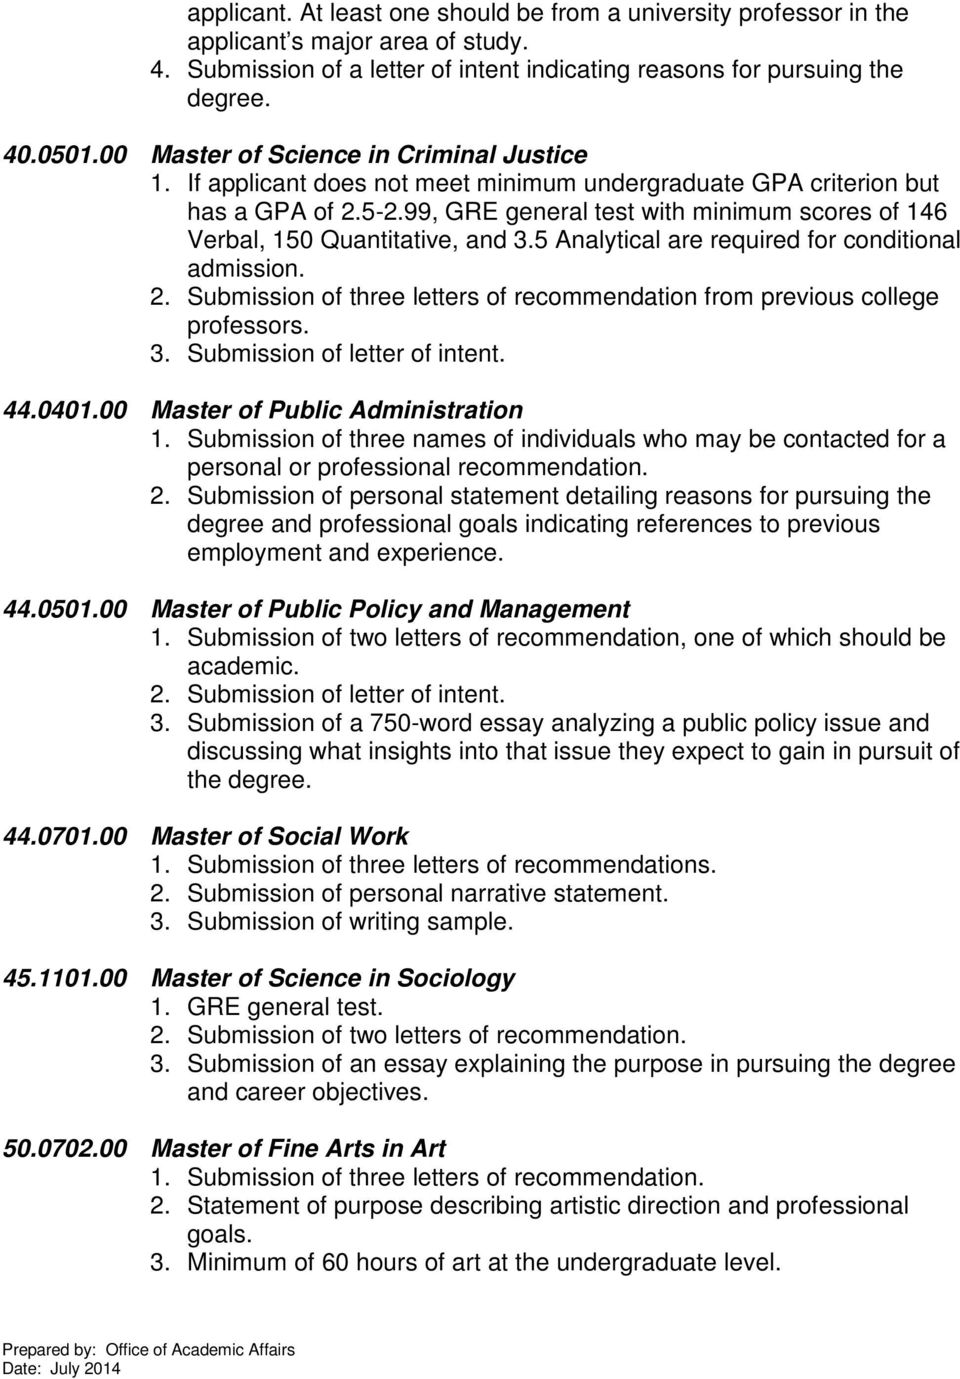 The University Of Texas Rio Grande Valley Admissions Criteria For